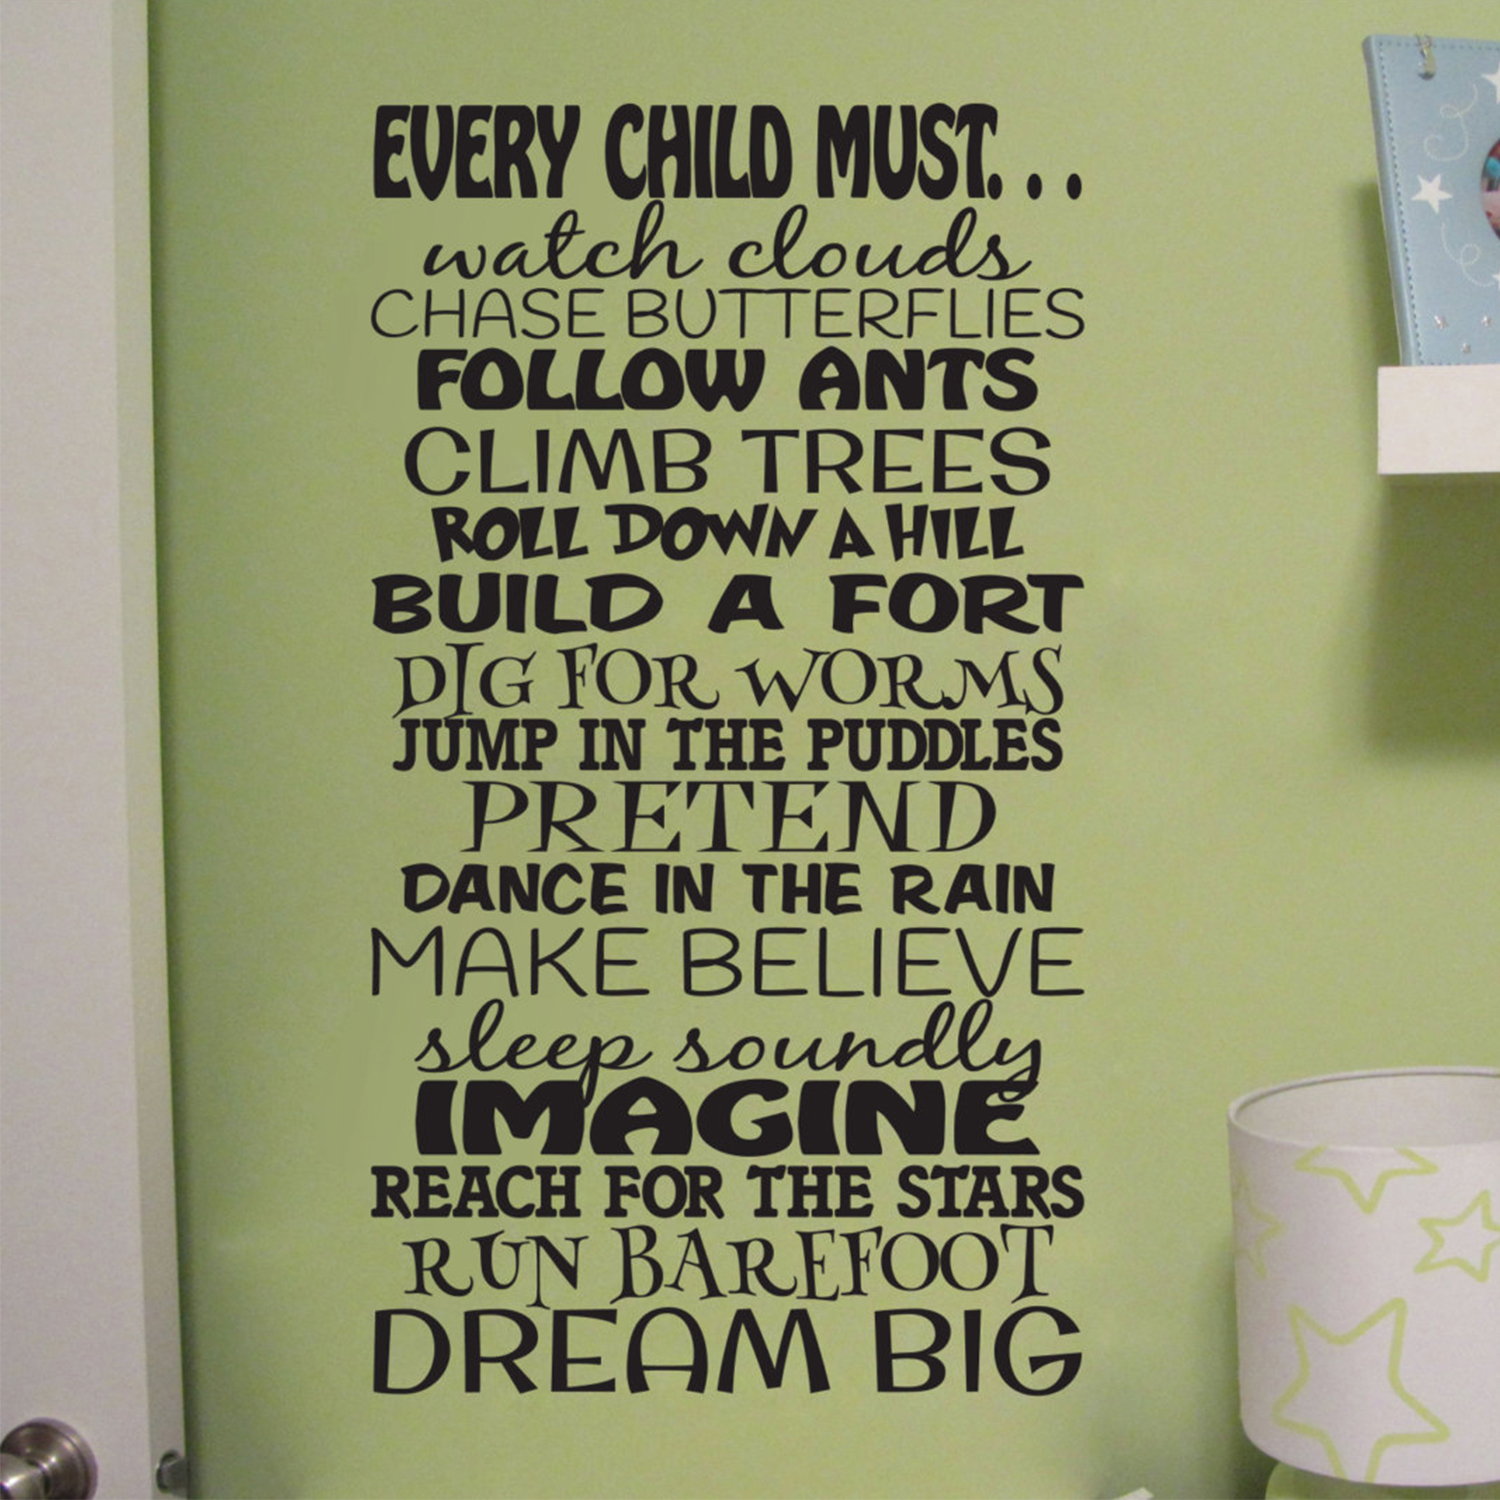 Every Child Must Dream Big Vinyl Wall Decal by Wild Eyes Signs, Children  Subway Art, Boys Room, Toddler Bedroom, Playroom Decal, Family Room,  Nursery